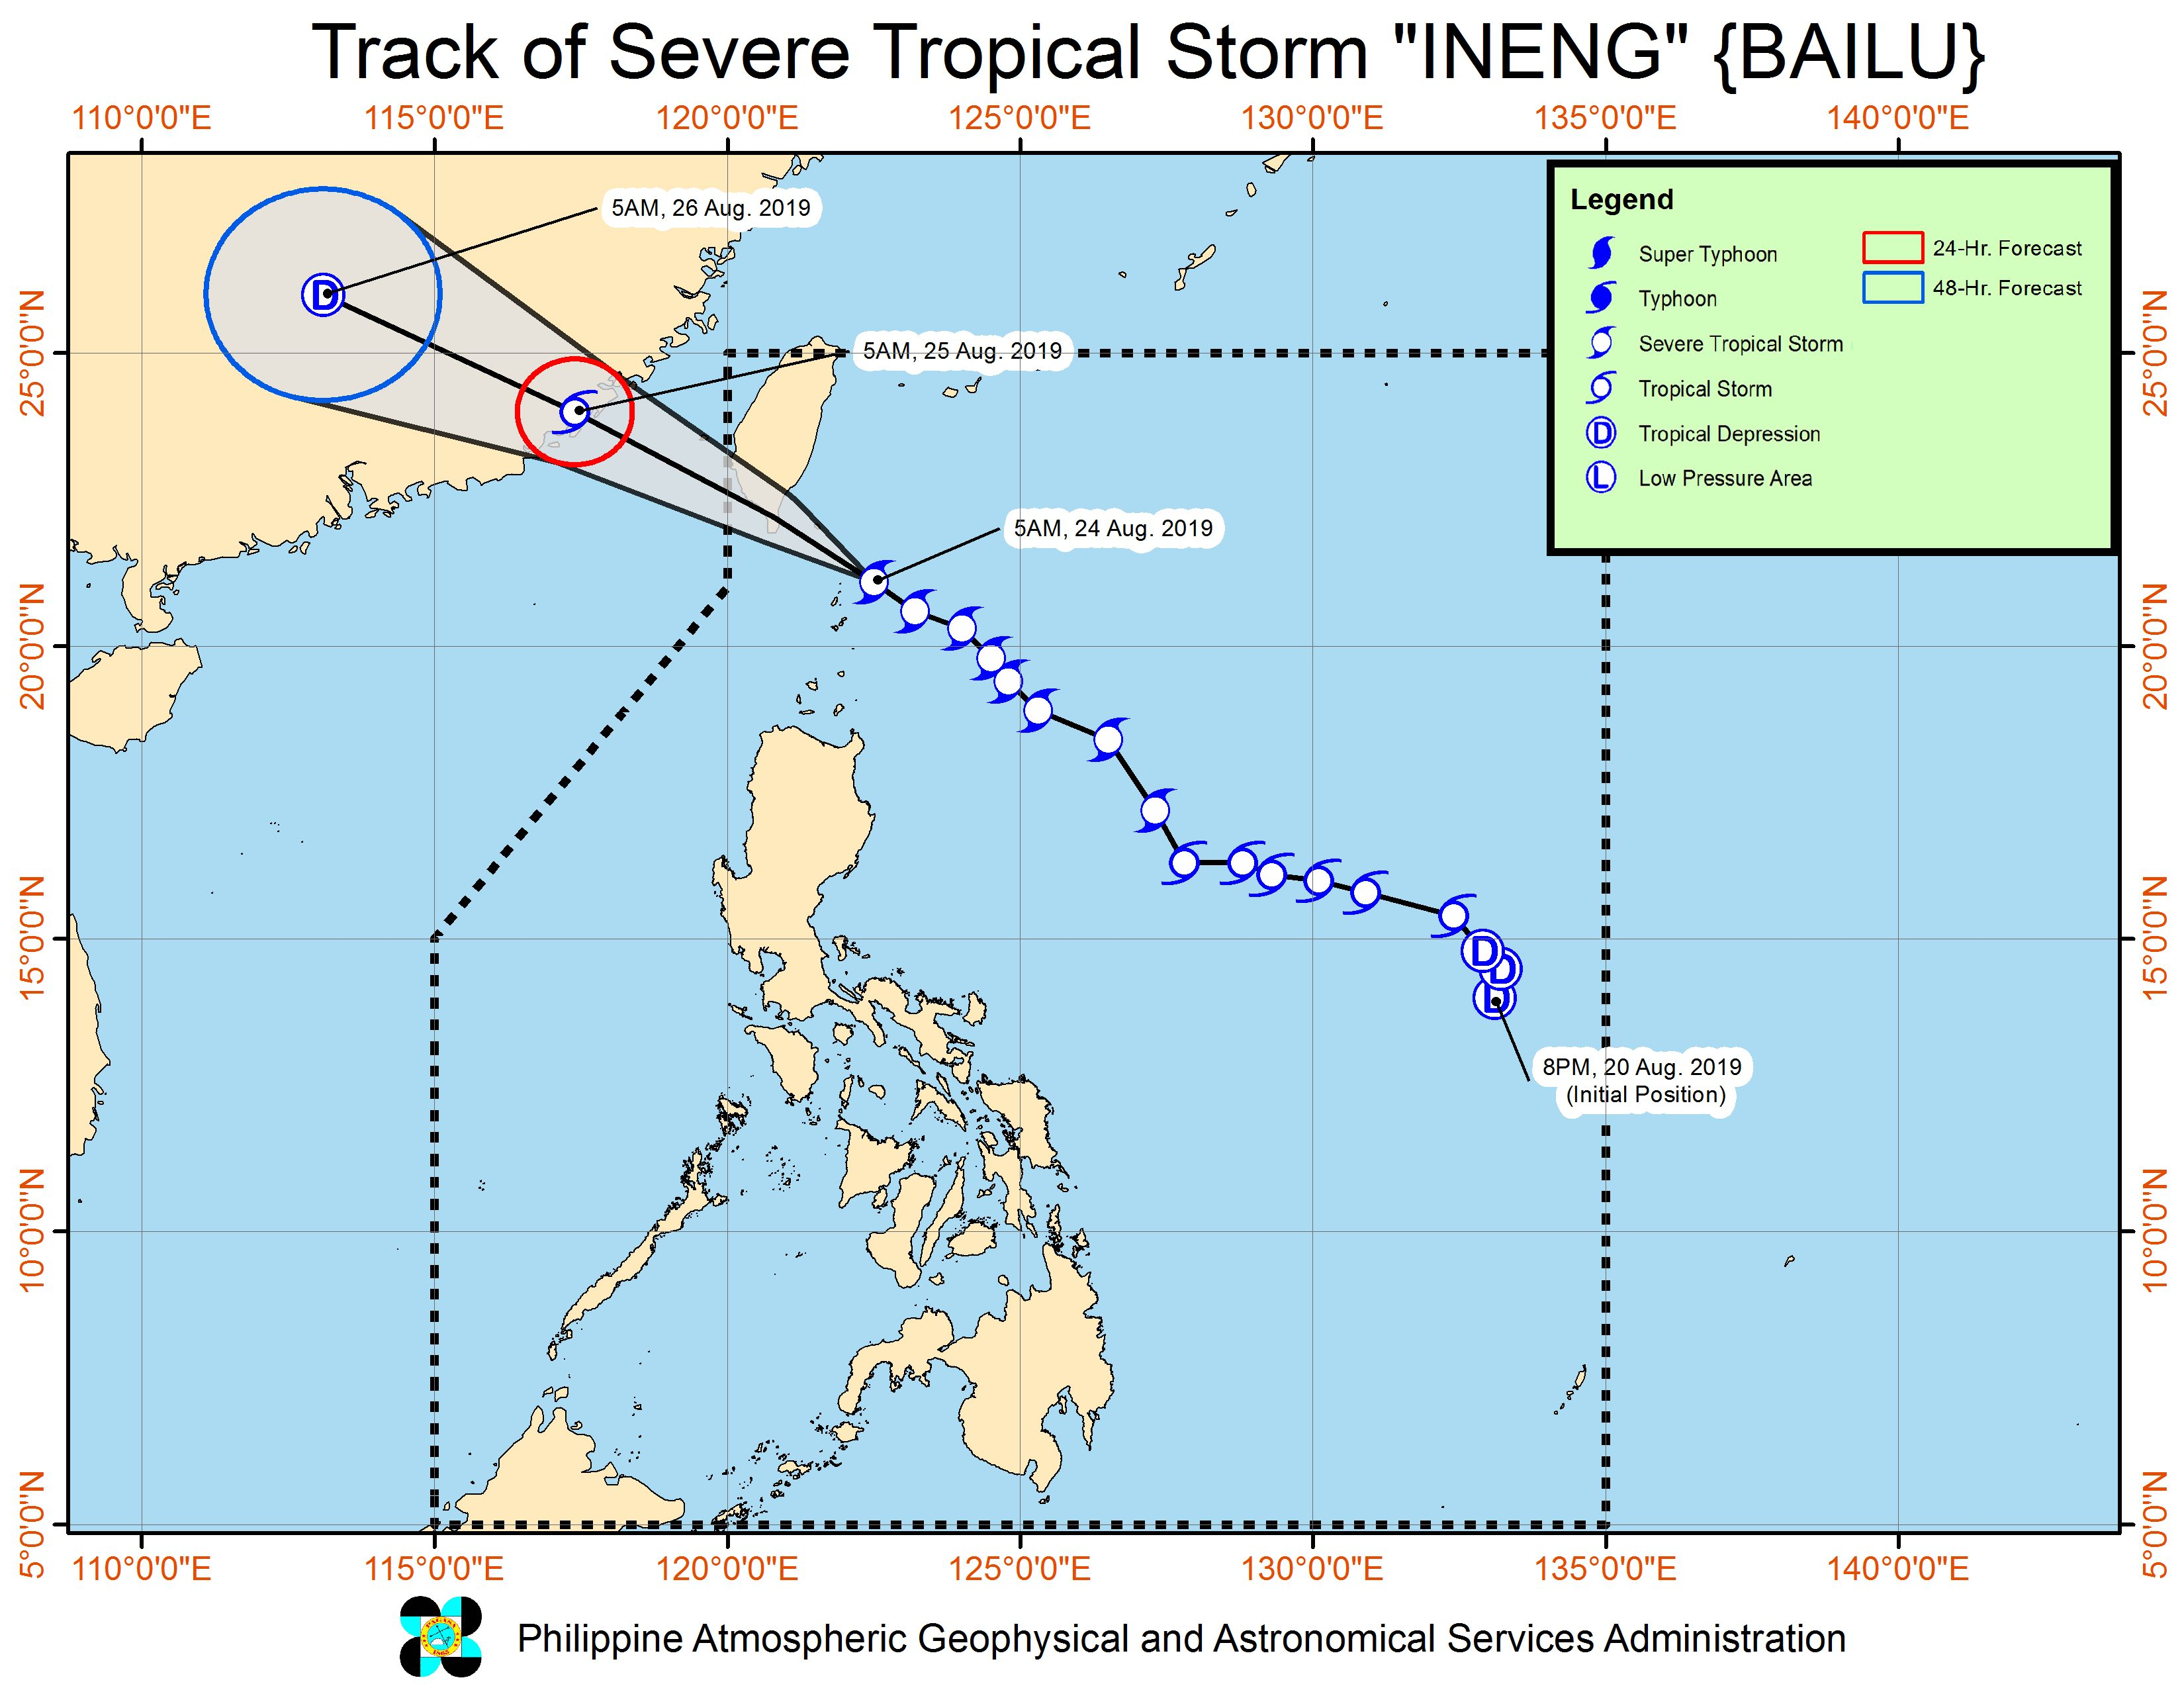 Forecast track of Severe Tropical Storm Ineng (Bailu) as of August 24, 2019, 8 am. Image from PAGASA